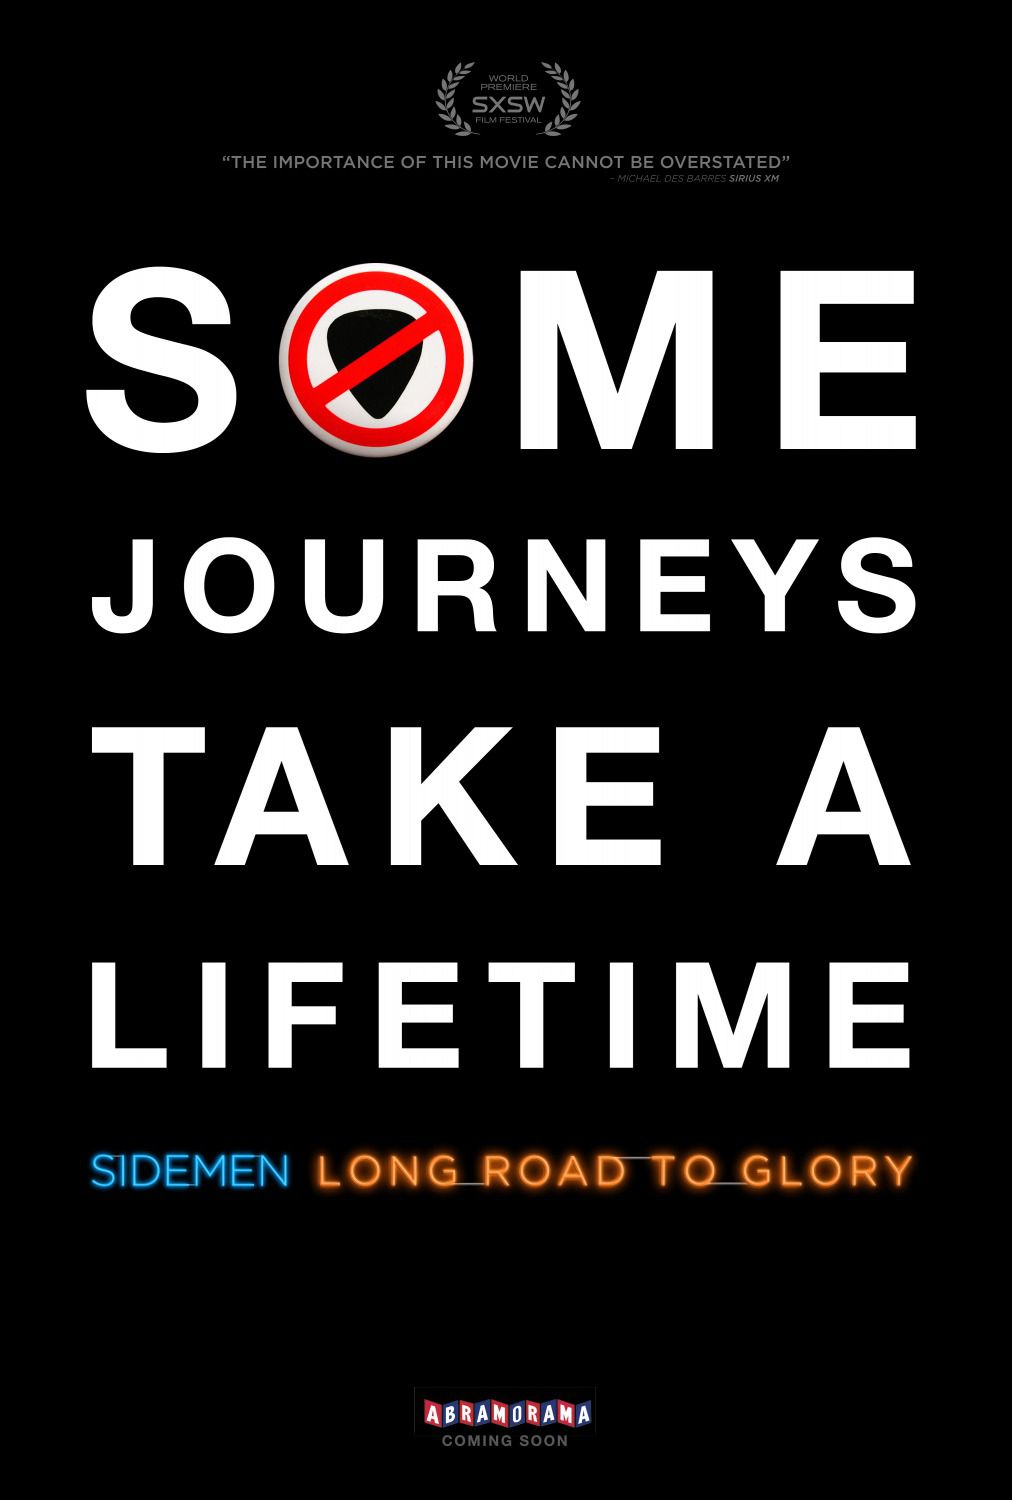 Sidemen long Road to Glory - some journeys take a lifetime